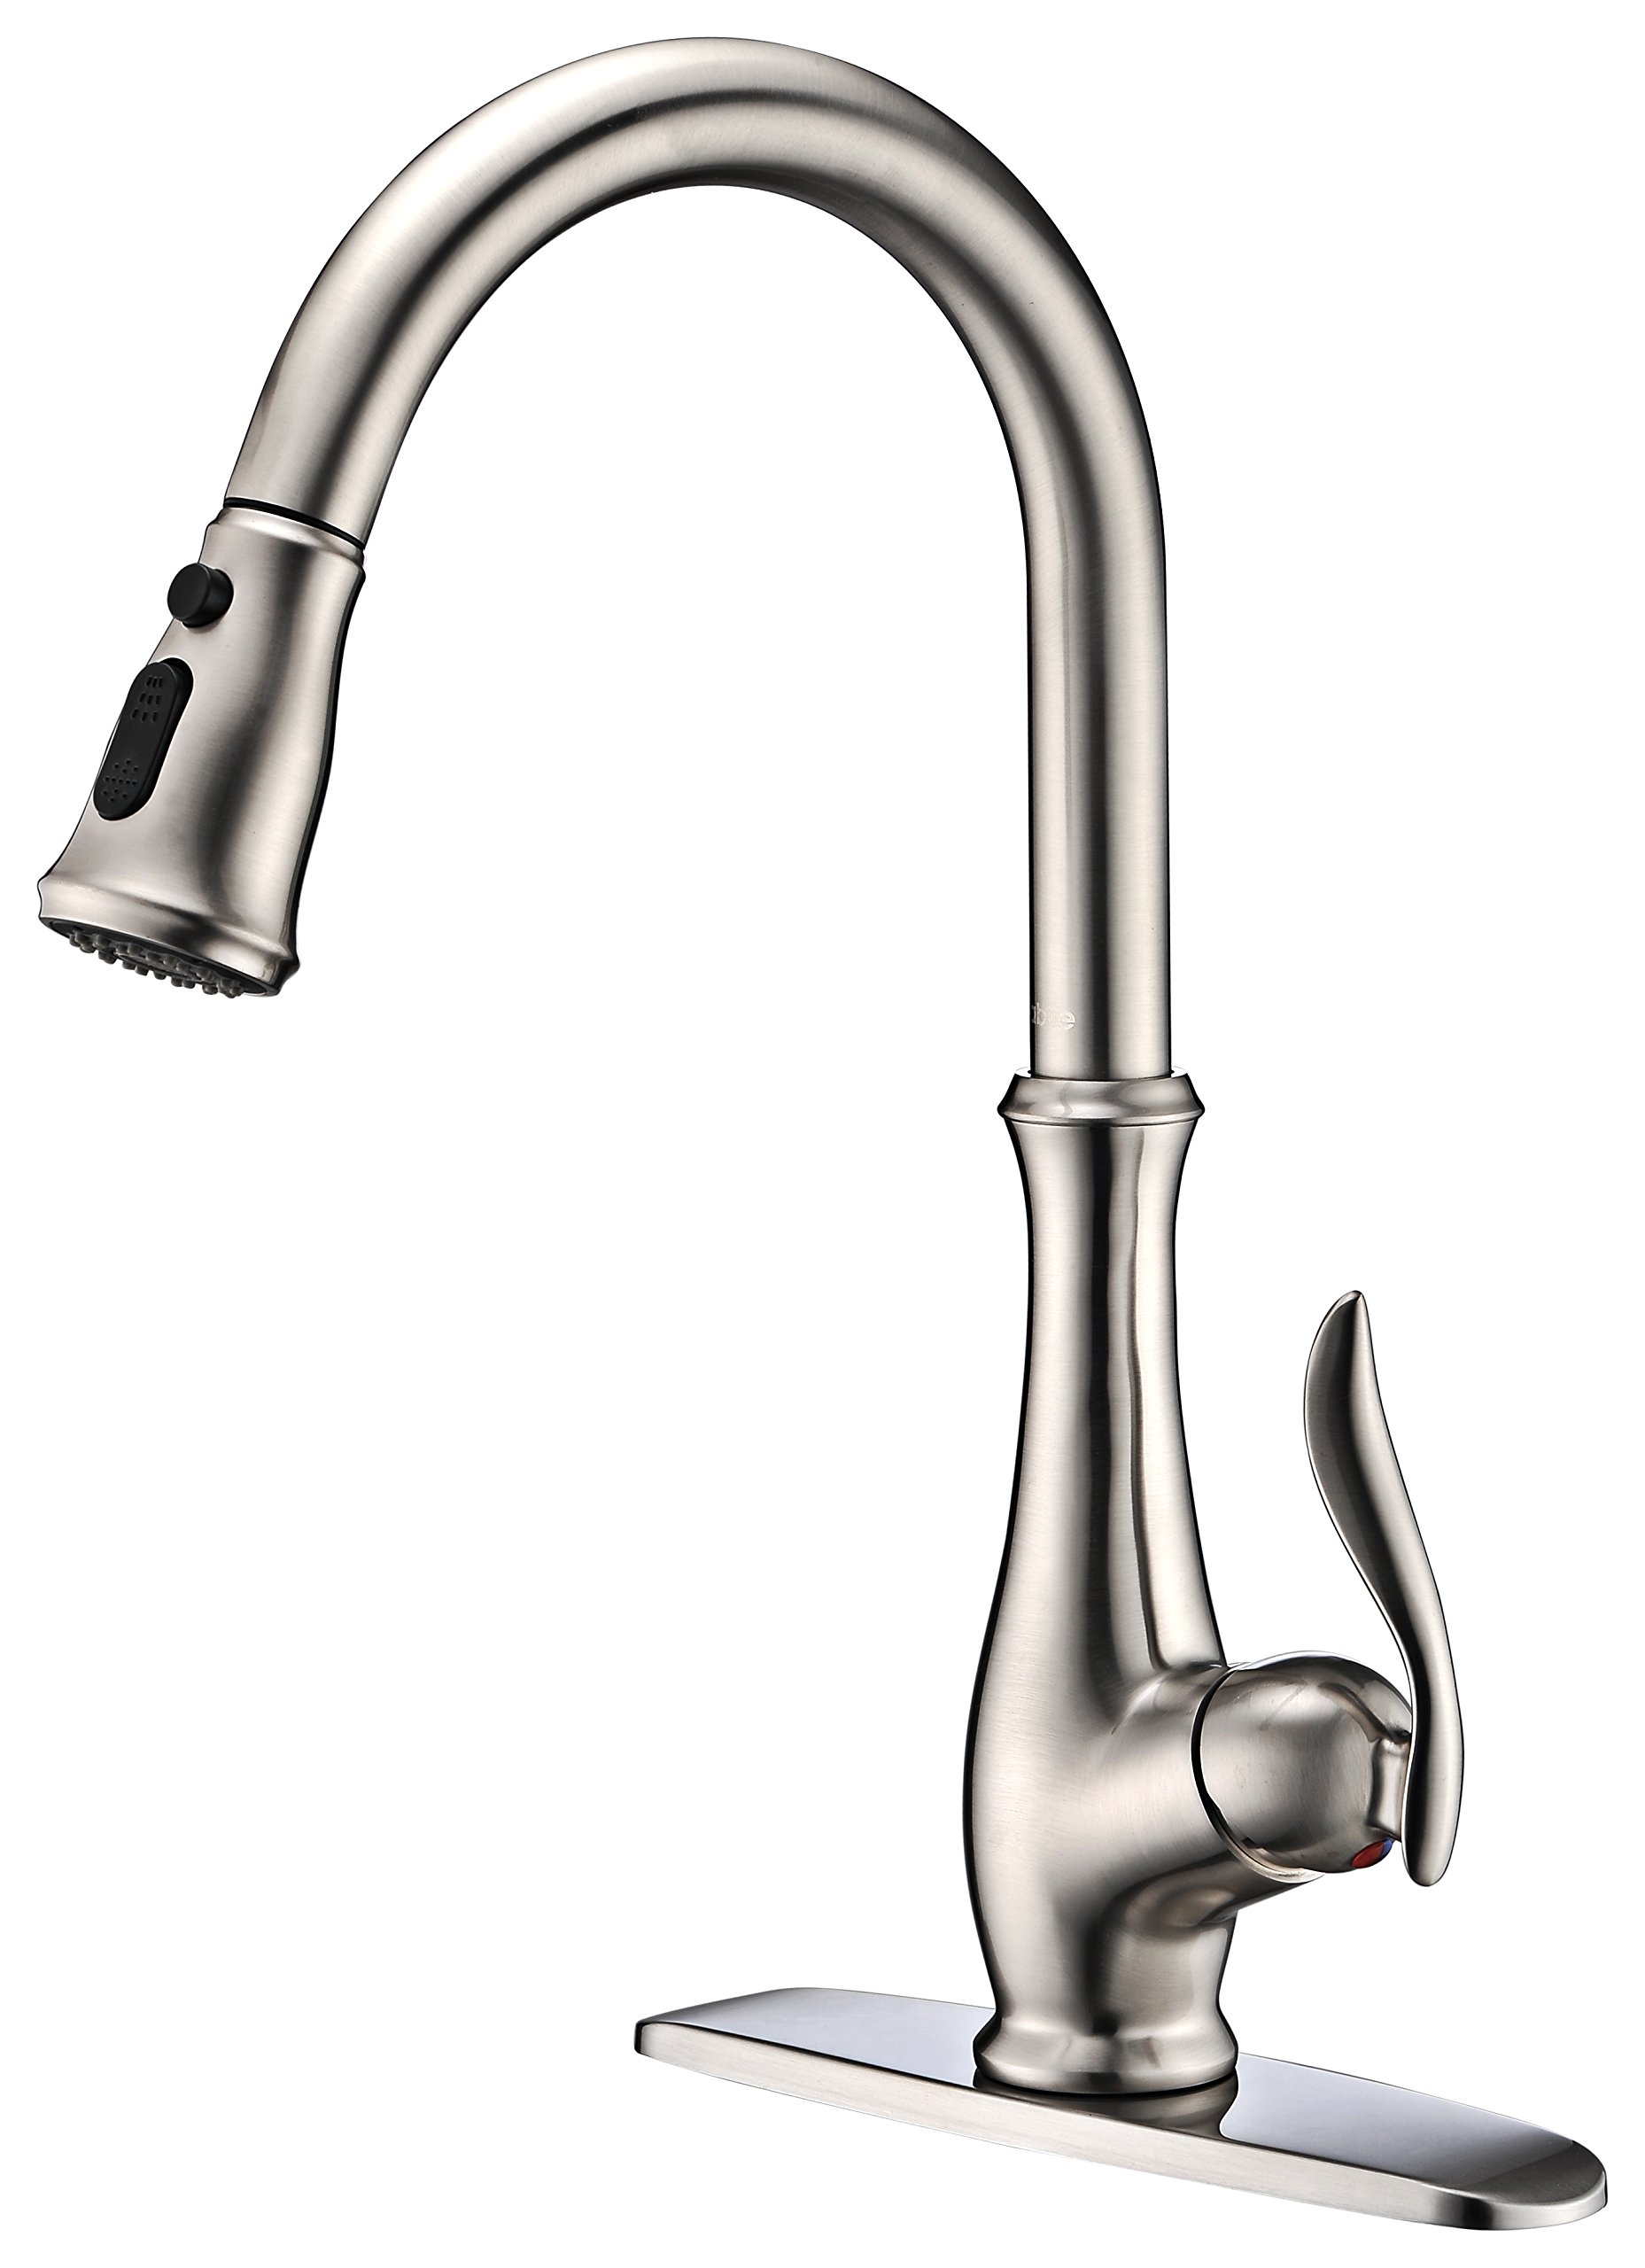 kitchens control commercial with valve single chrome polished faucet monterrey faucets remote sprayer gooseneck kitchen